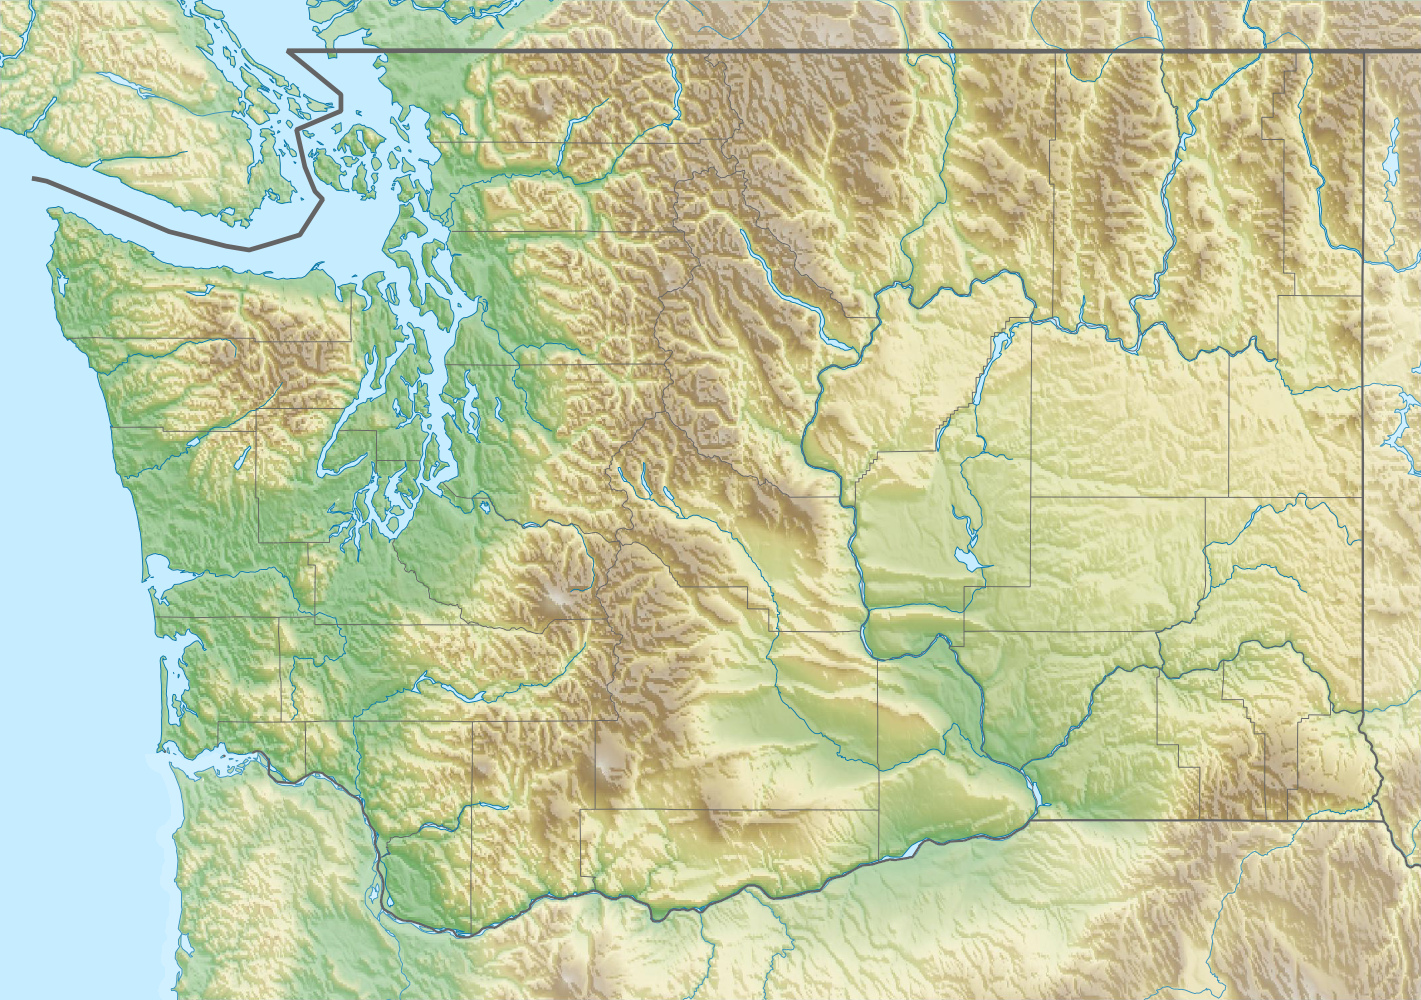 ski areas in washington state map Ski Bluewood Wikipedia